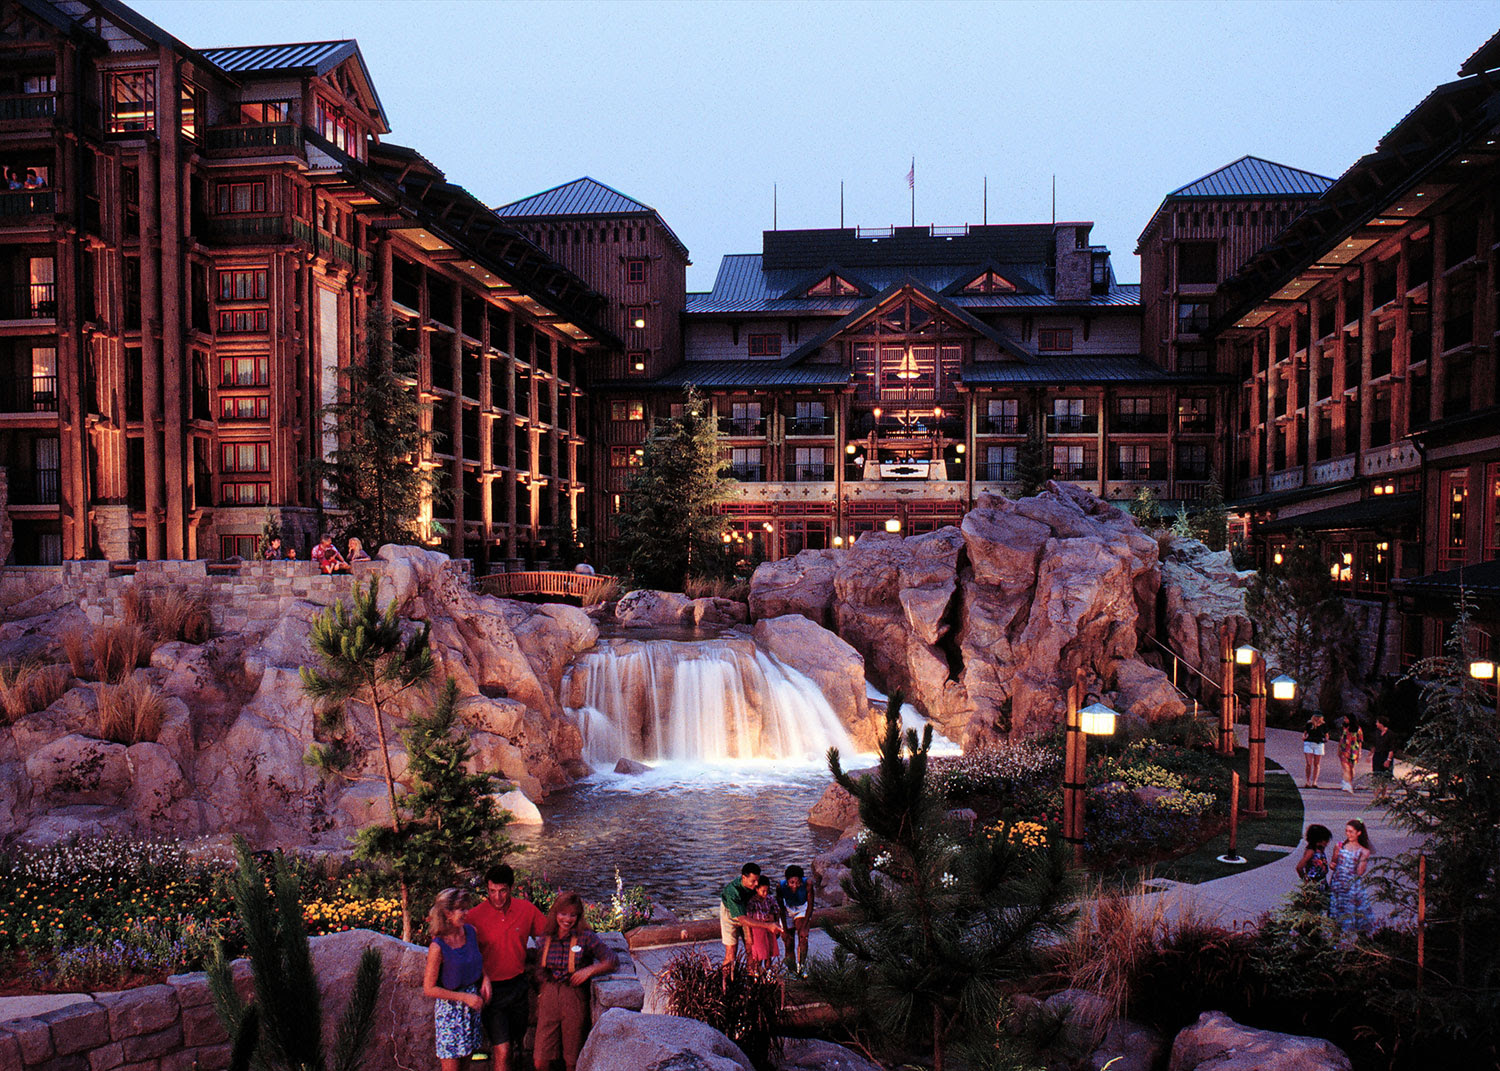 Book Now To Save Up To 35 On Rooms at Select Walt Disney